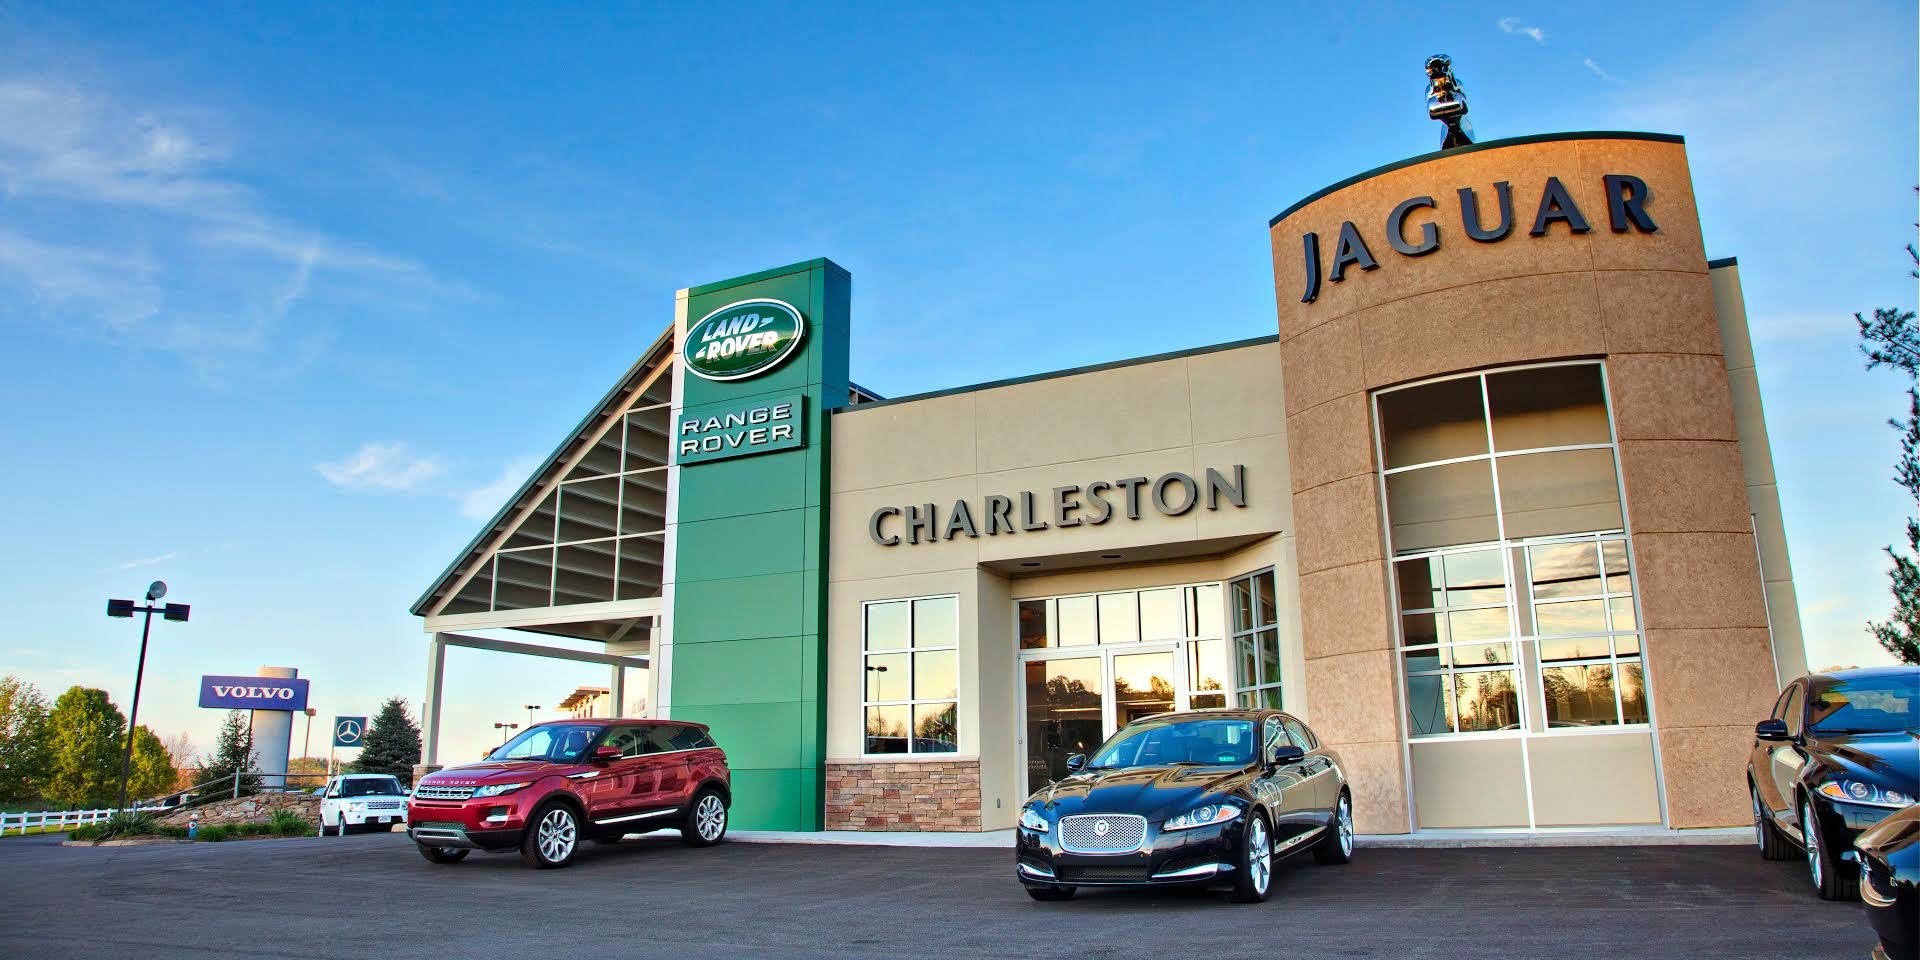 jaguar charleston in charleston wv 25309